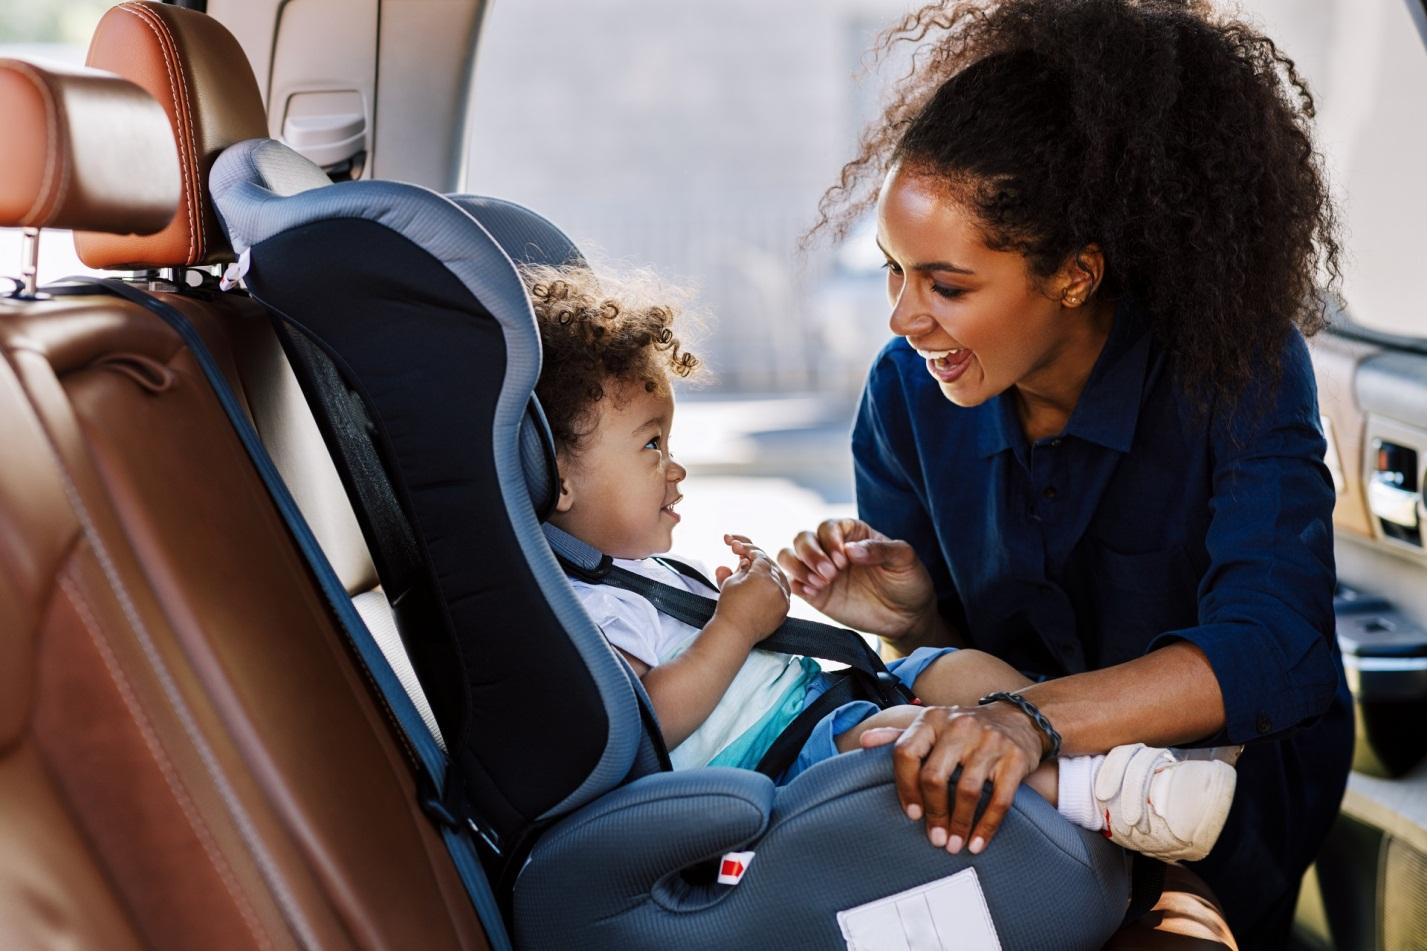 What are the rules for child seats in rental cars?